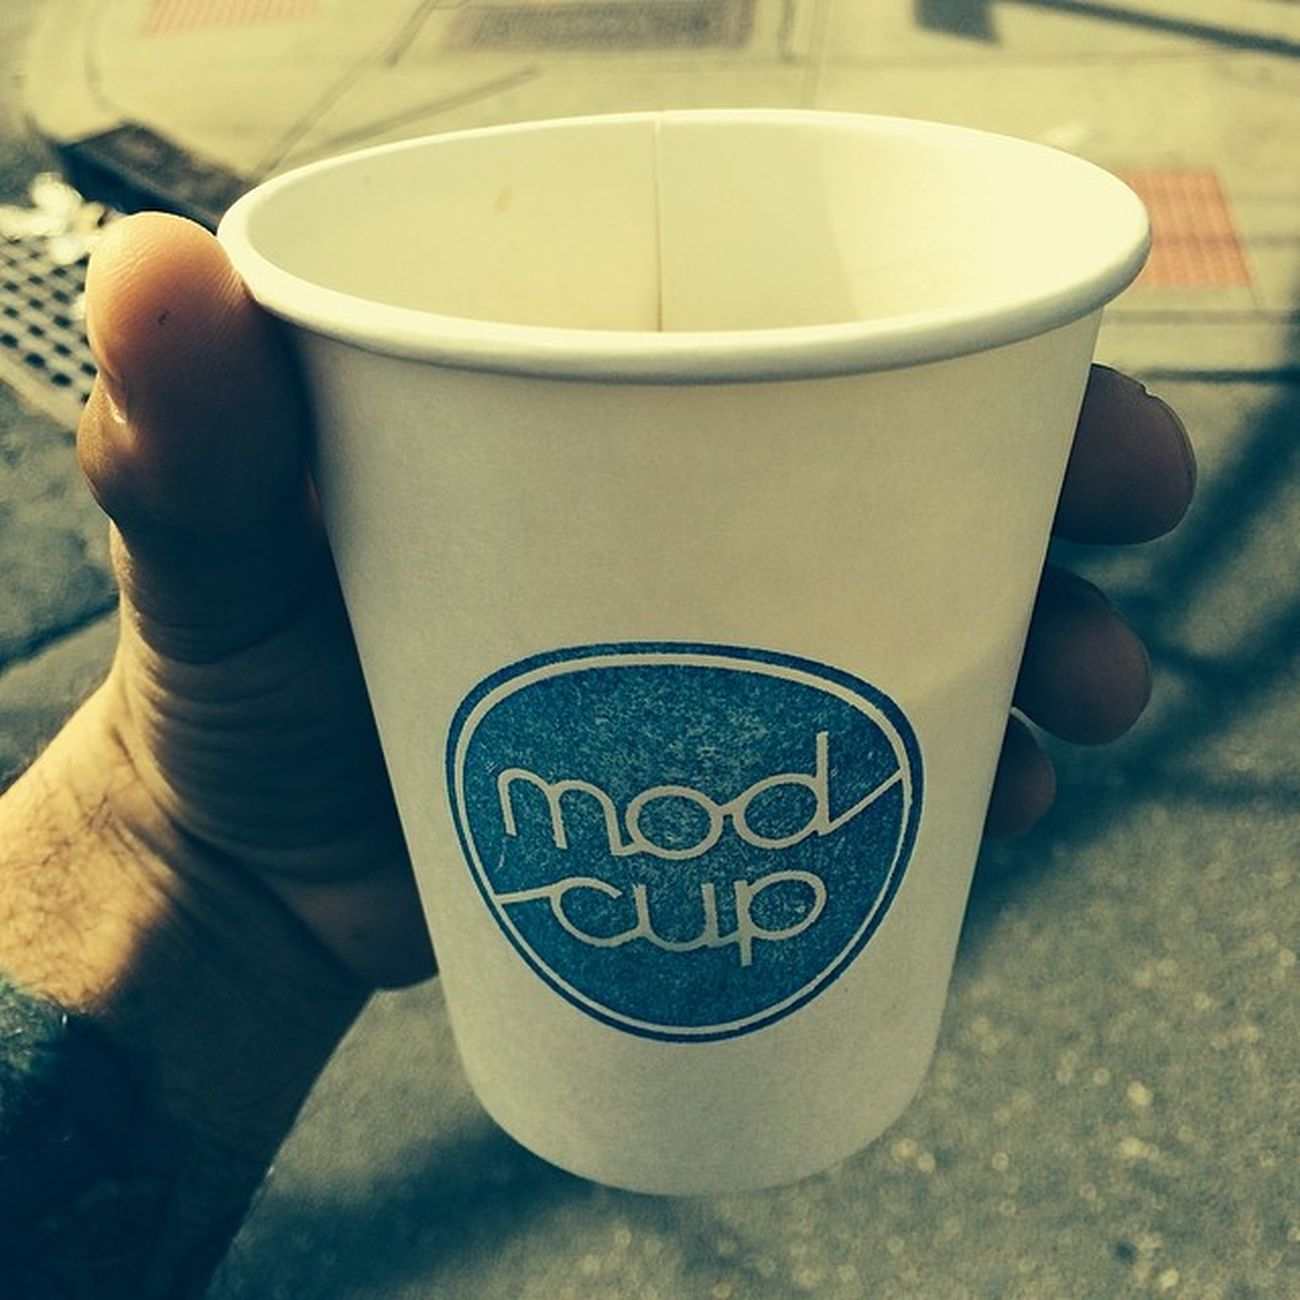 Mudcup coffee.. Coffeebrewing Coffee Uniquecoffee Saturday realcoffee mudcup jerseycity tasty forrealcoffeelovers enjoy